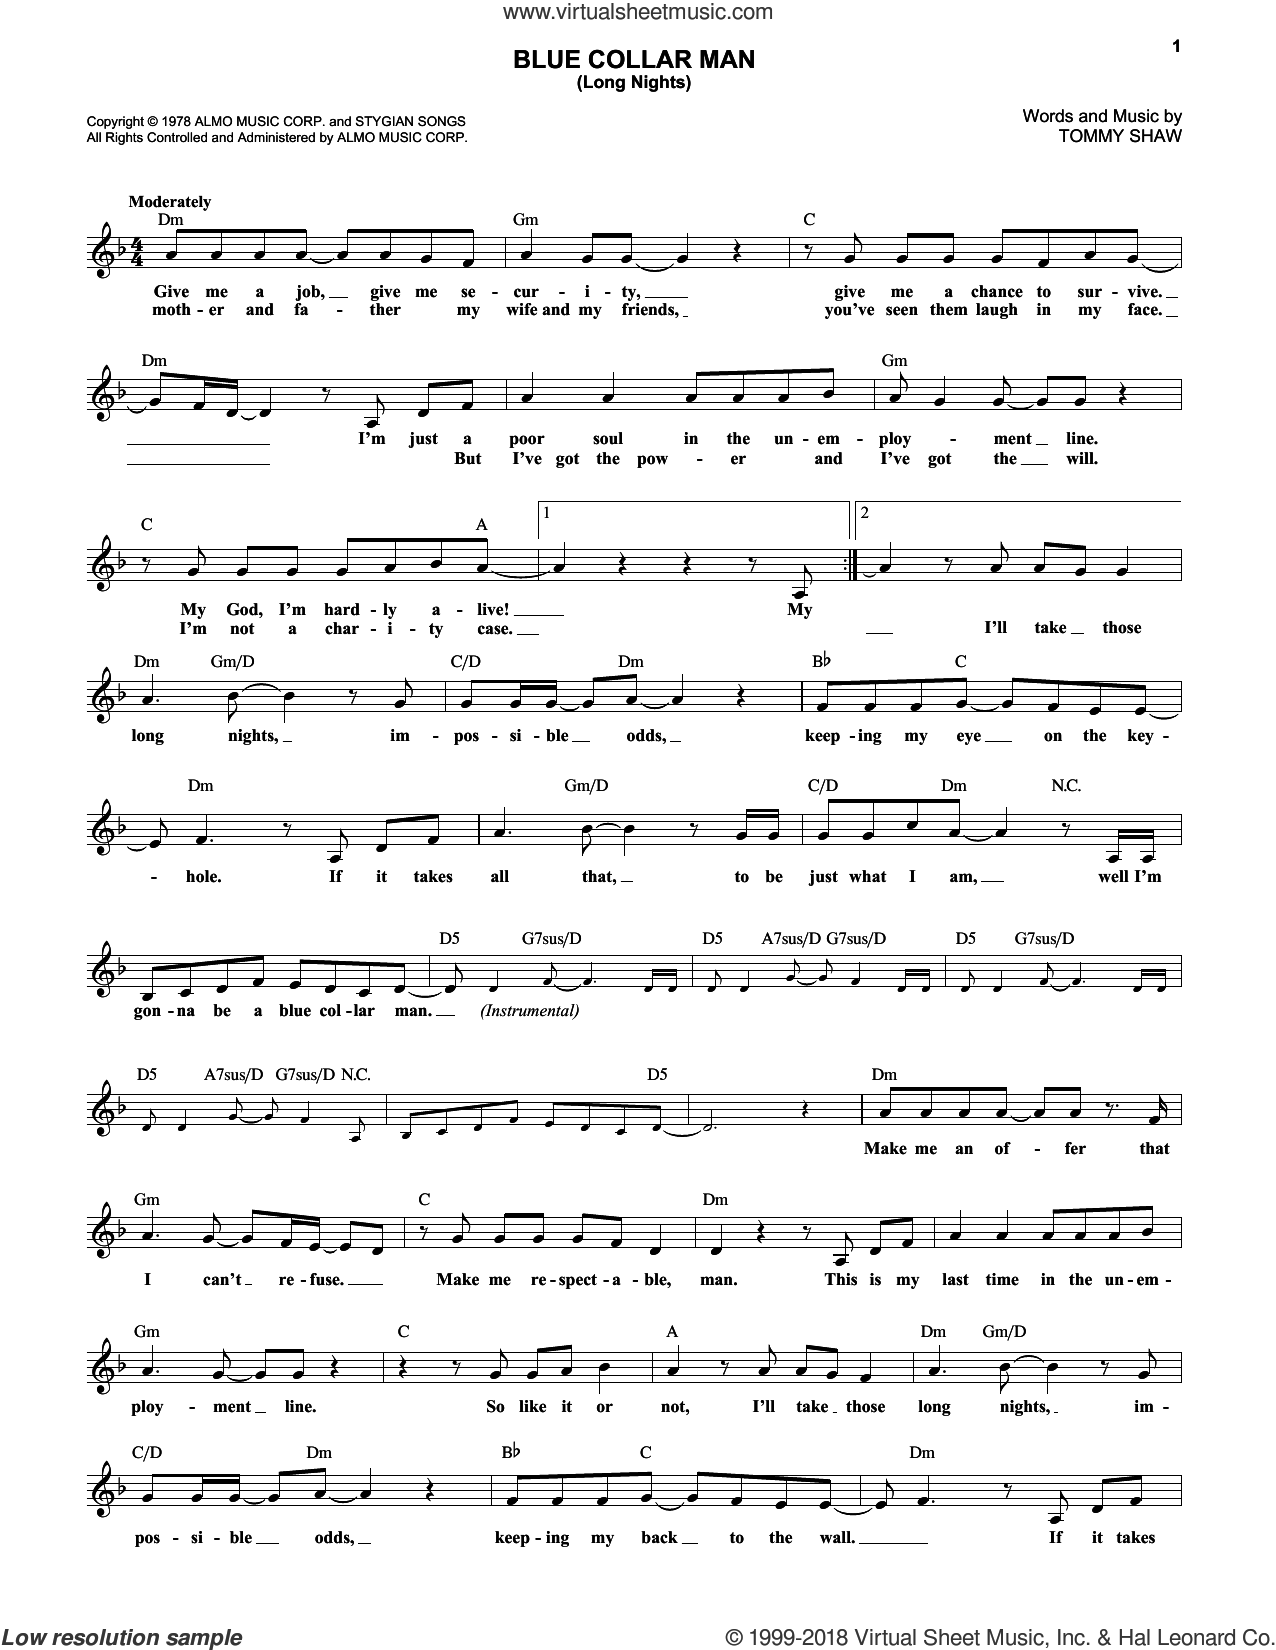 Blue Collar Man (Long Nights) sheet music for voice and other instruments (fake book) by Styx and Tommy Shaw, intermediate skill level